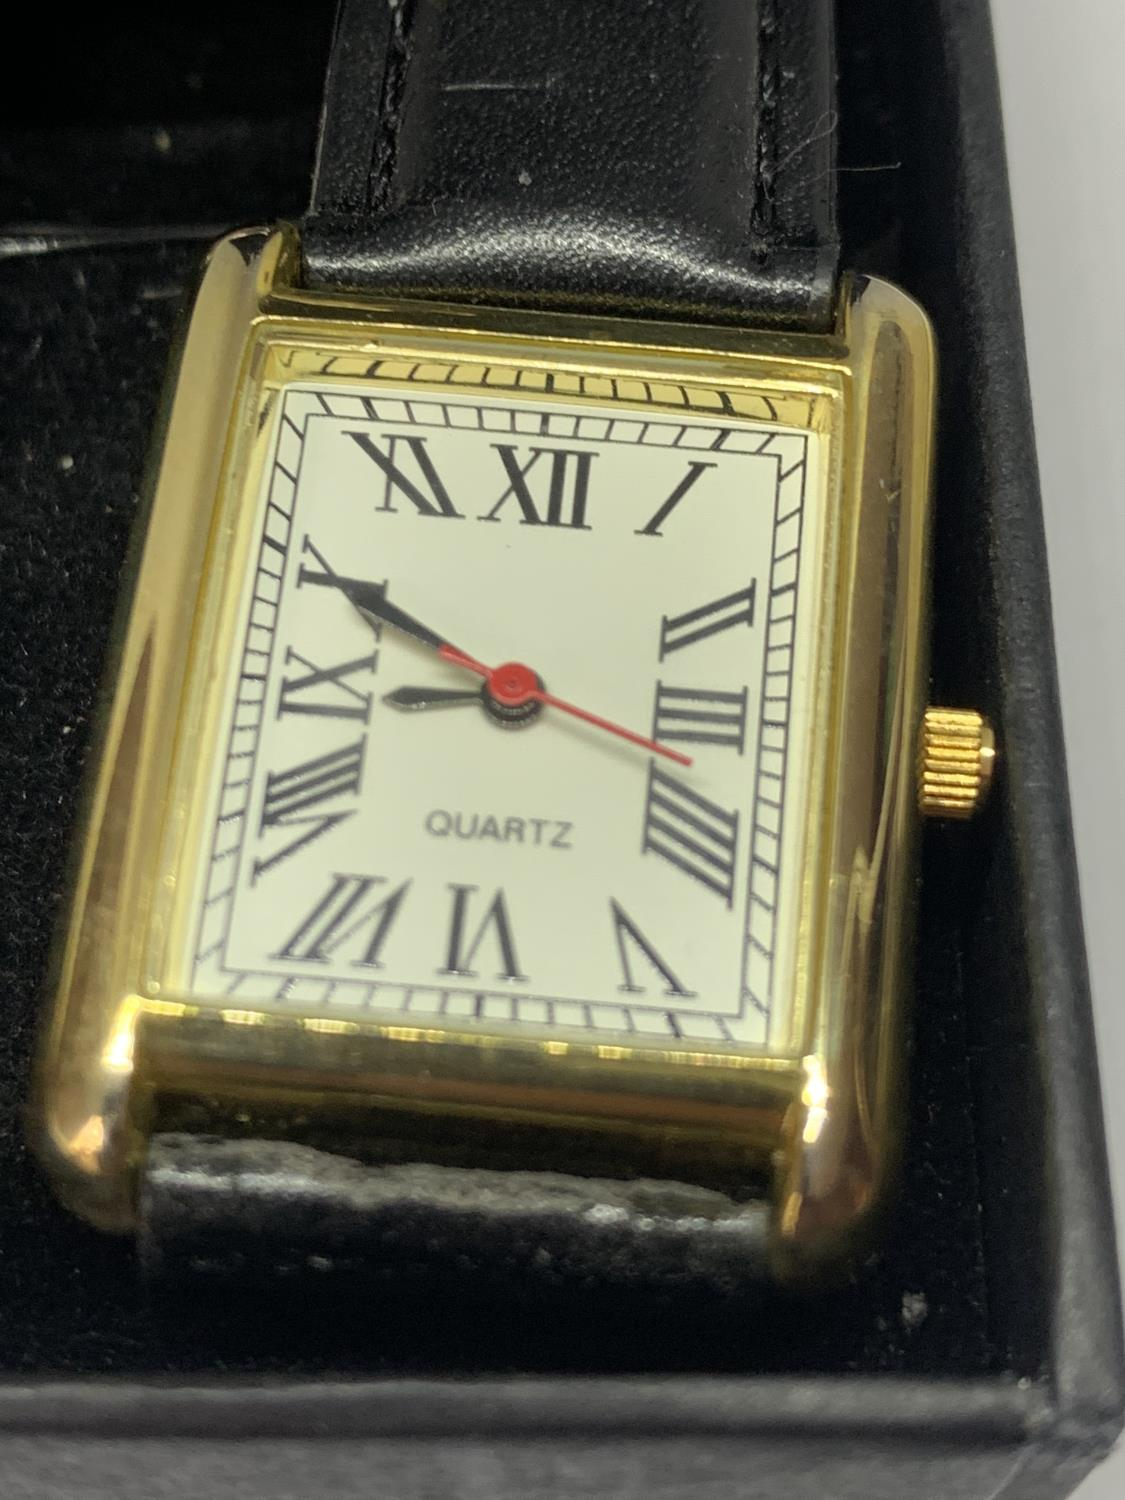 TWO WRISTWATCHES WITH BLACK LEATHER STRAPS - Image 2 of 3